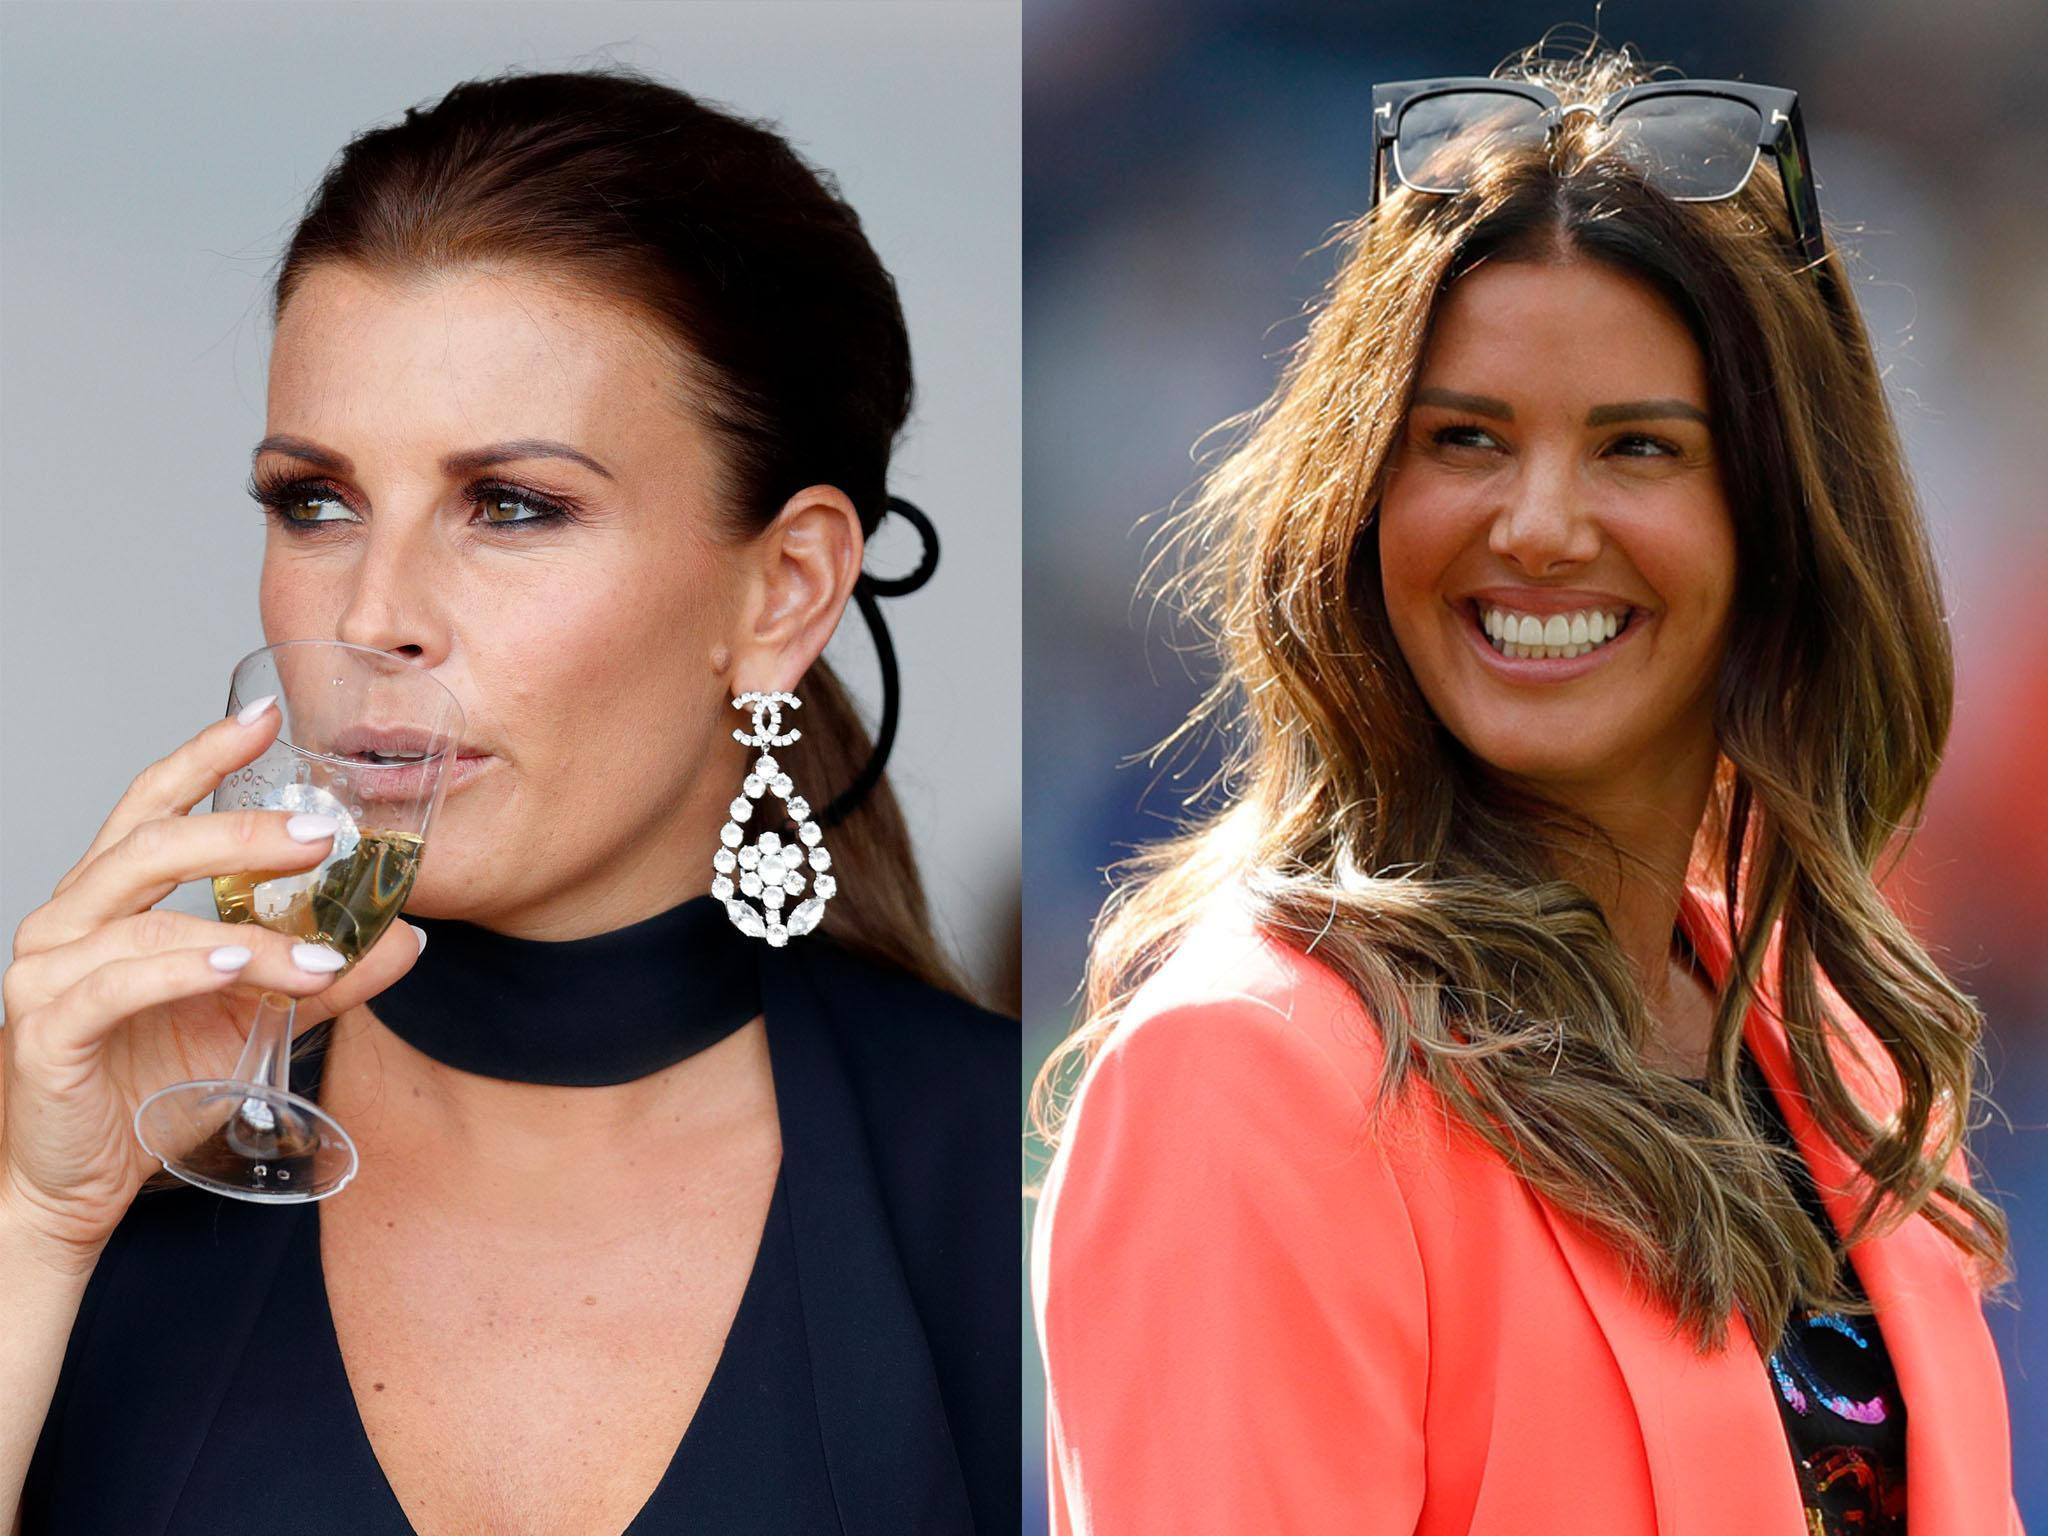 Most explosive celebrity social media rows from Coleen Rooney and Rebekah Vardy to Donald Trump and Chrissy Teigen